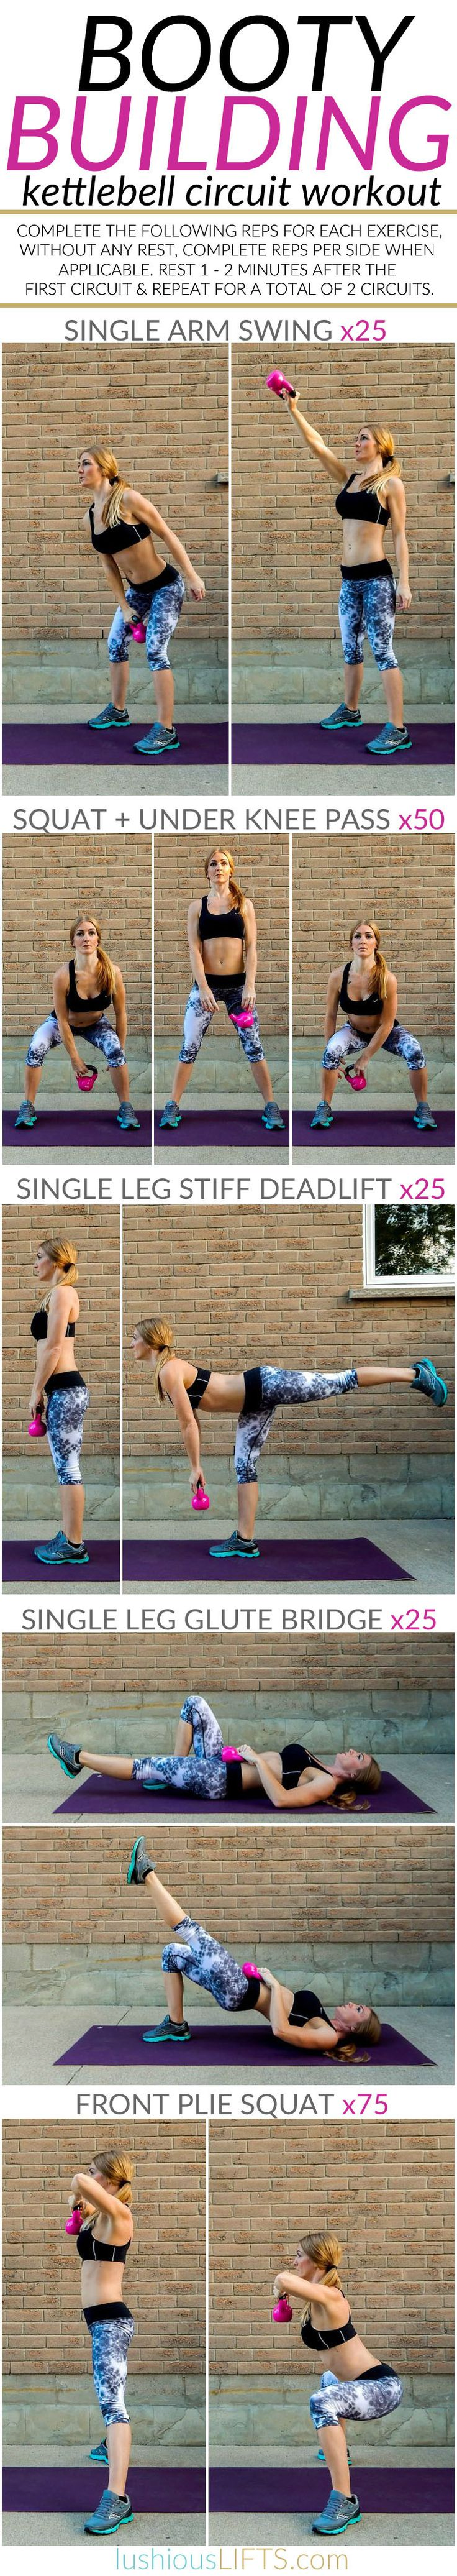 Best  Kettlebell Love images on Pinterest  Workouts Exercise